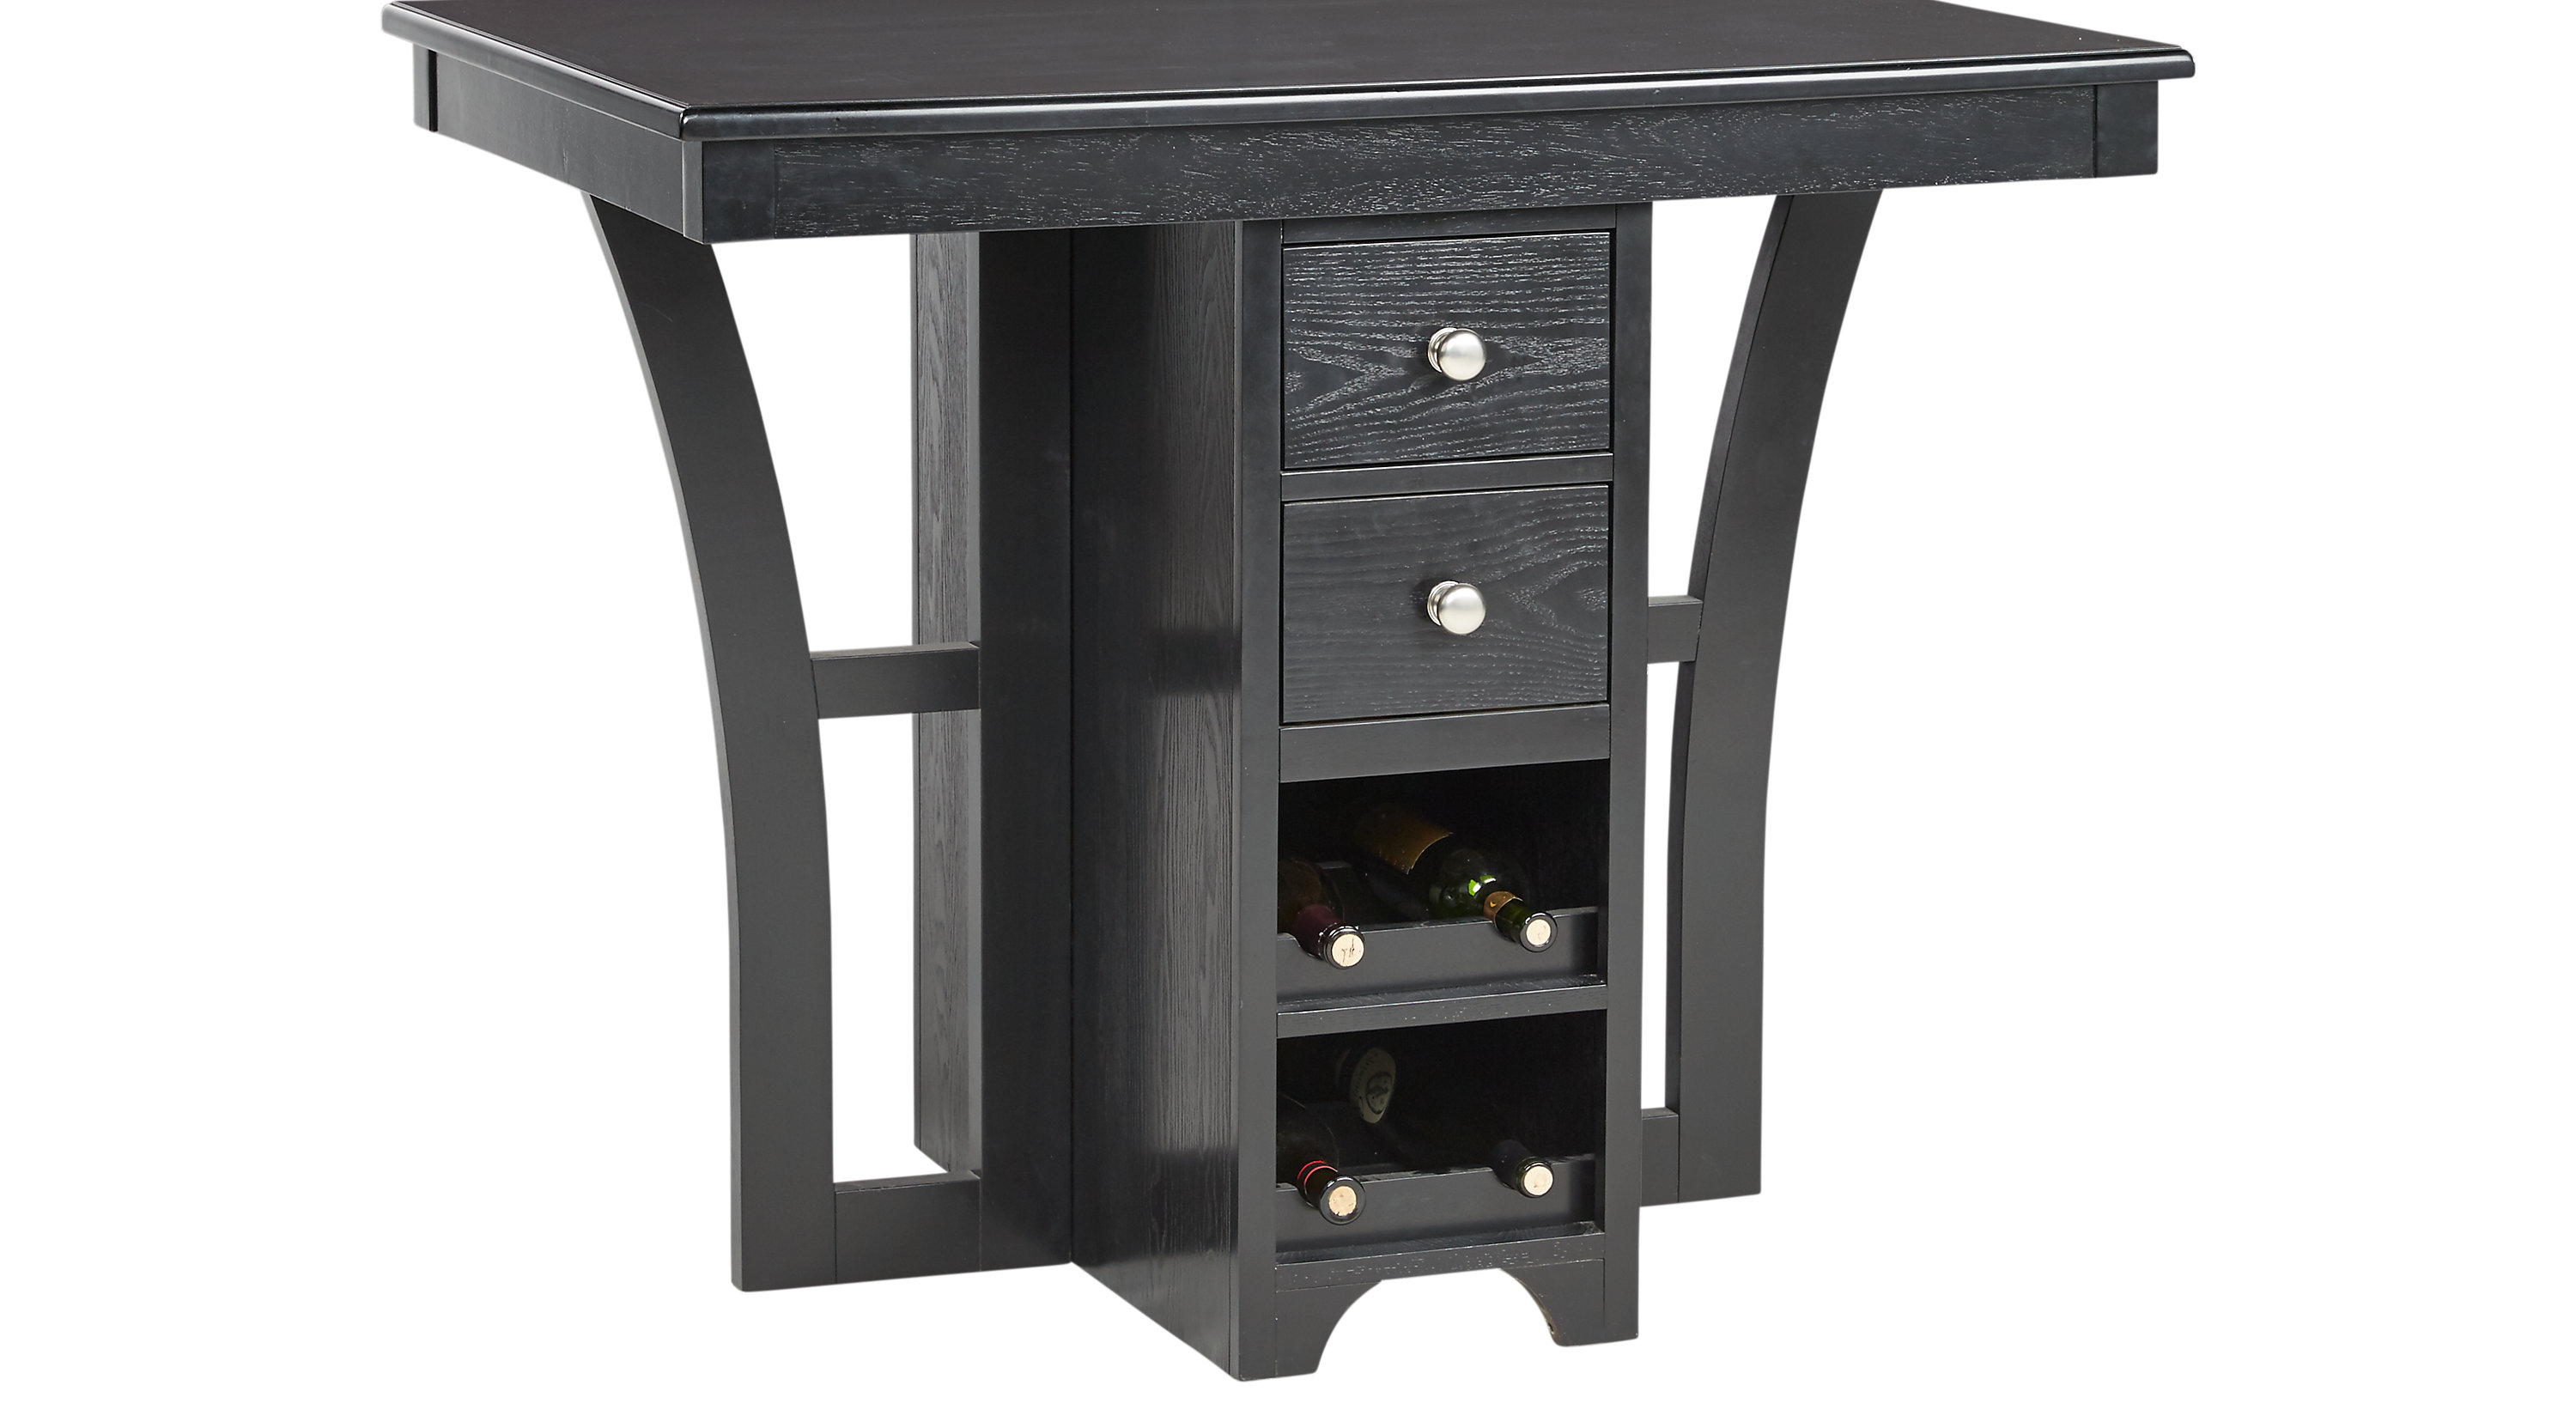 Dining Tables Rooms To Go Ellwood Black Bar Height Table 4310900p